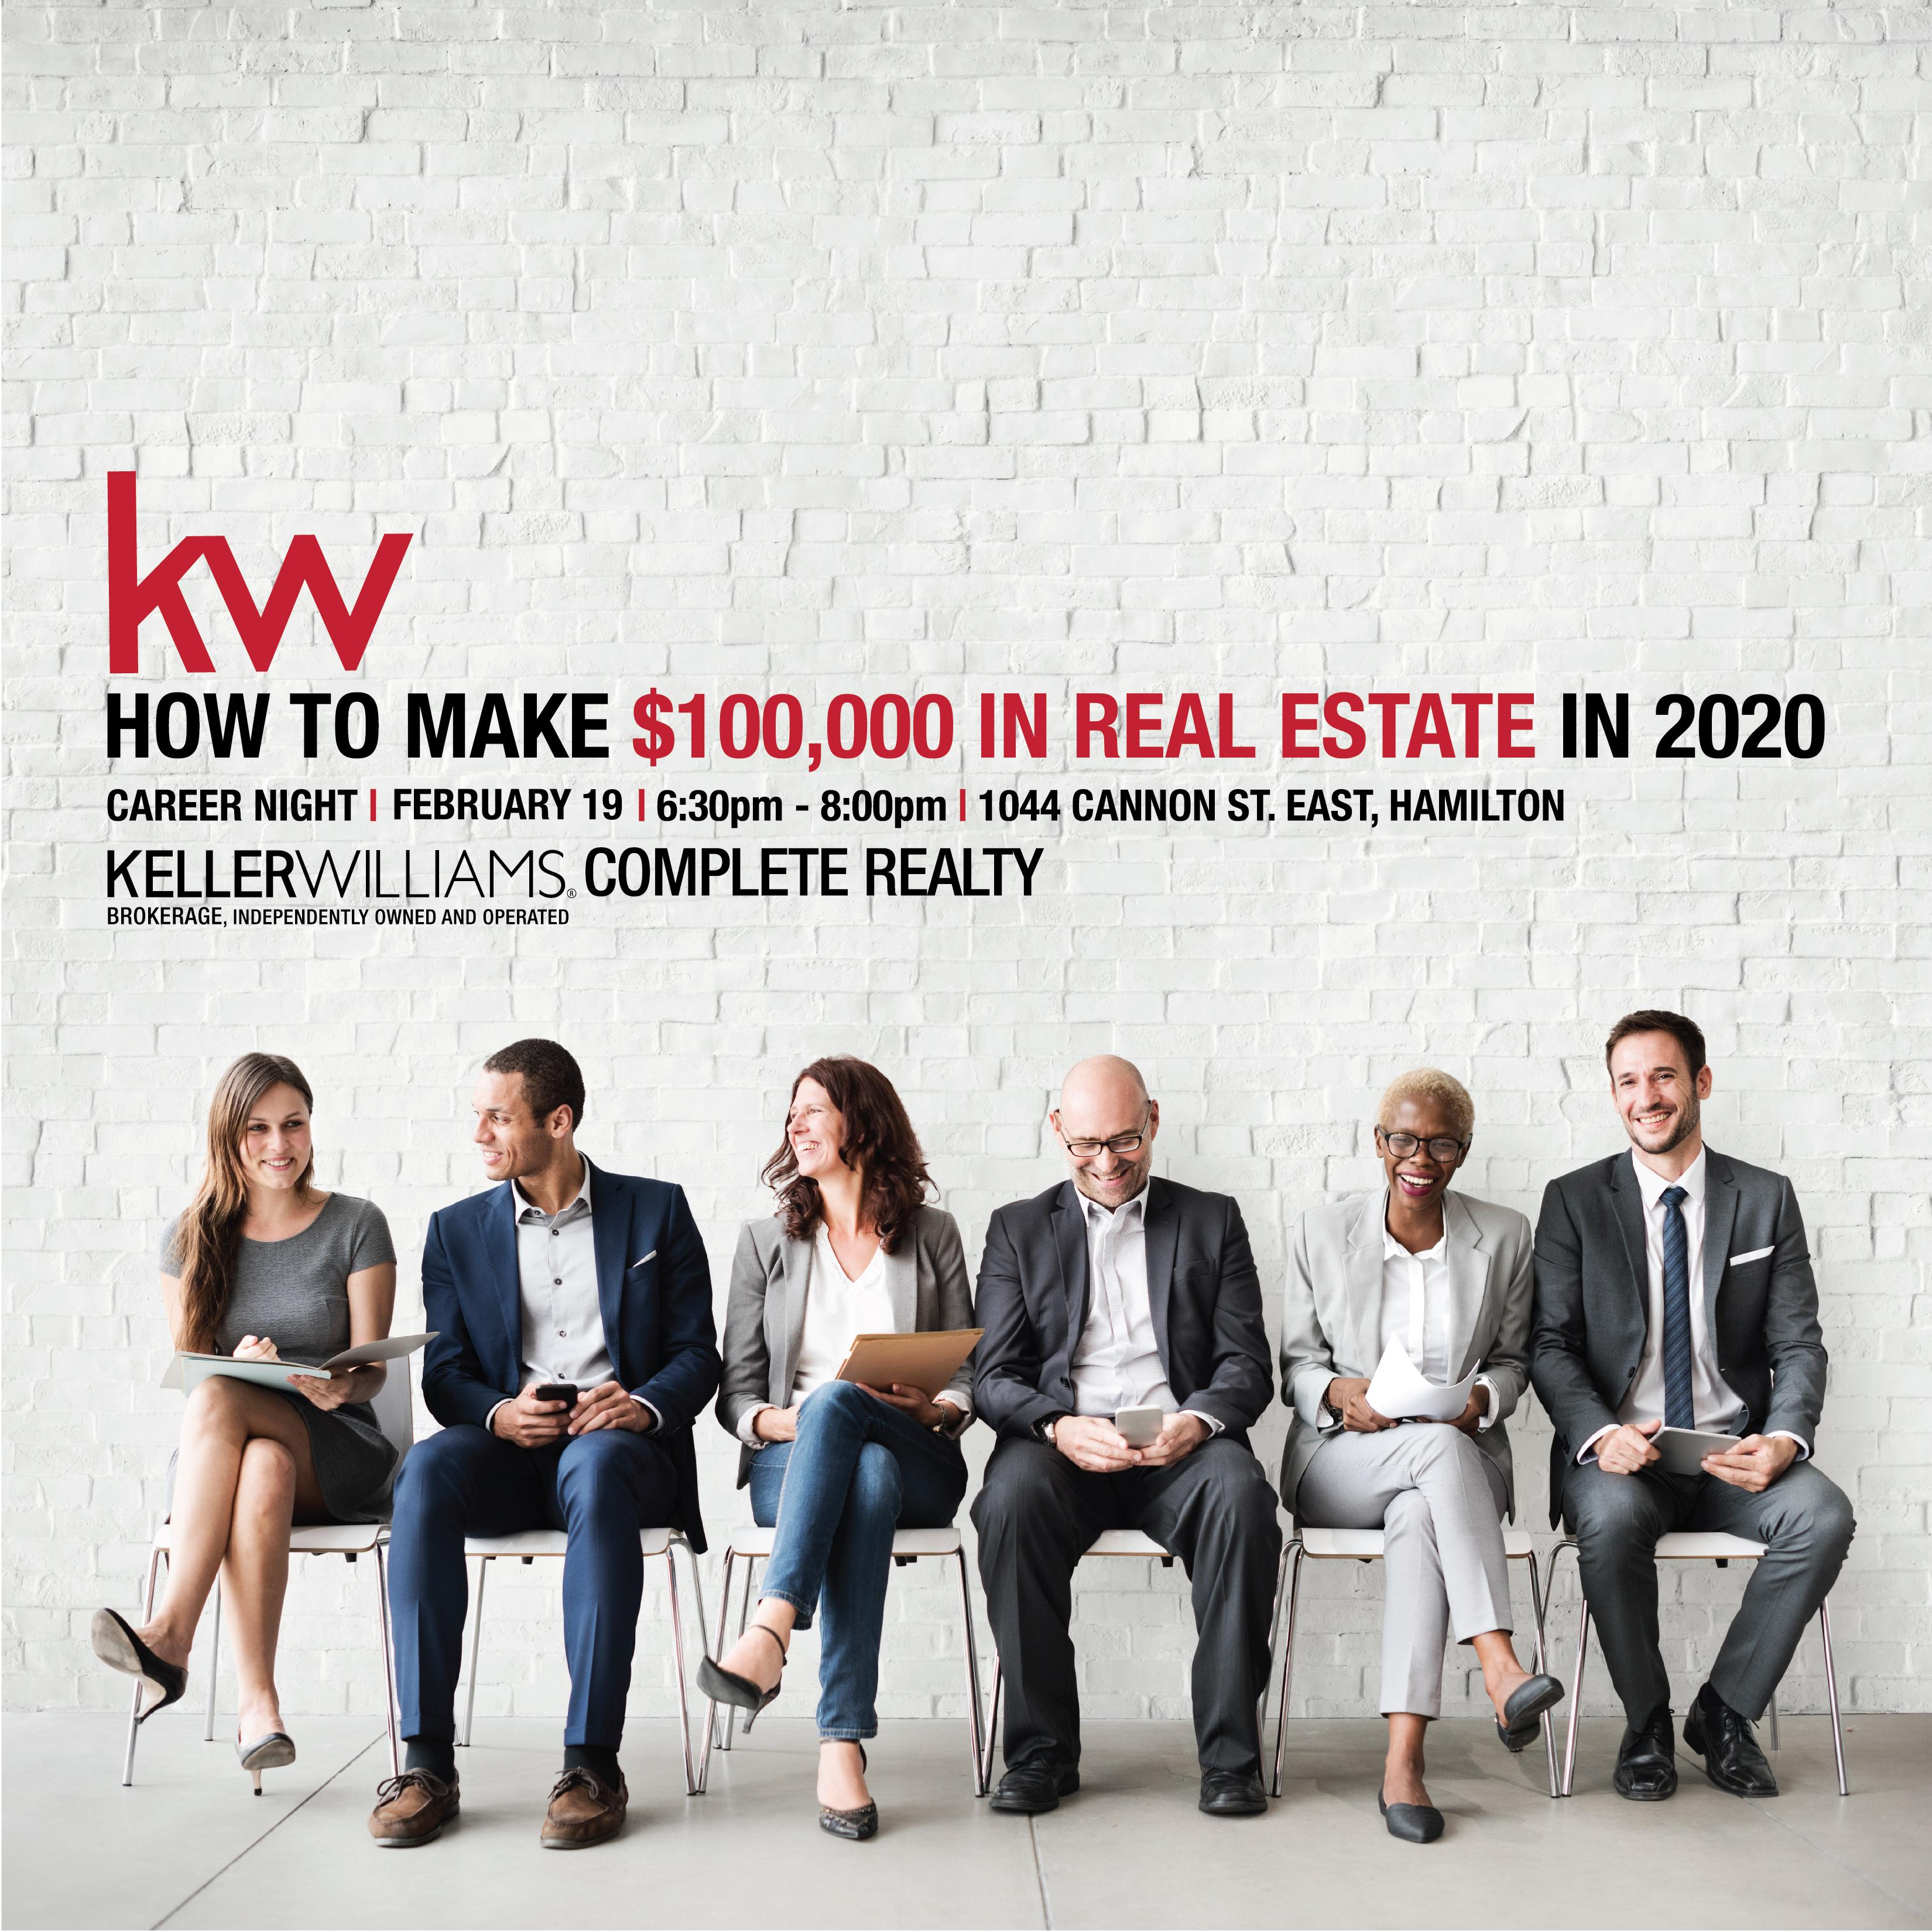 Career Night | How To Make $100,000 In Real Estate